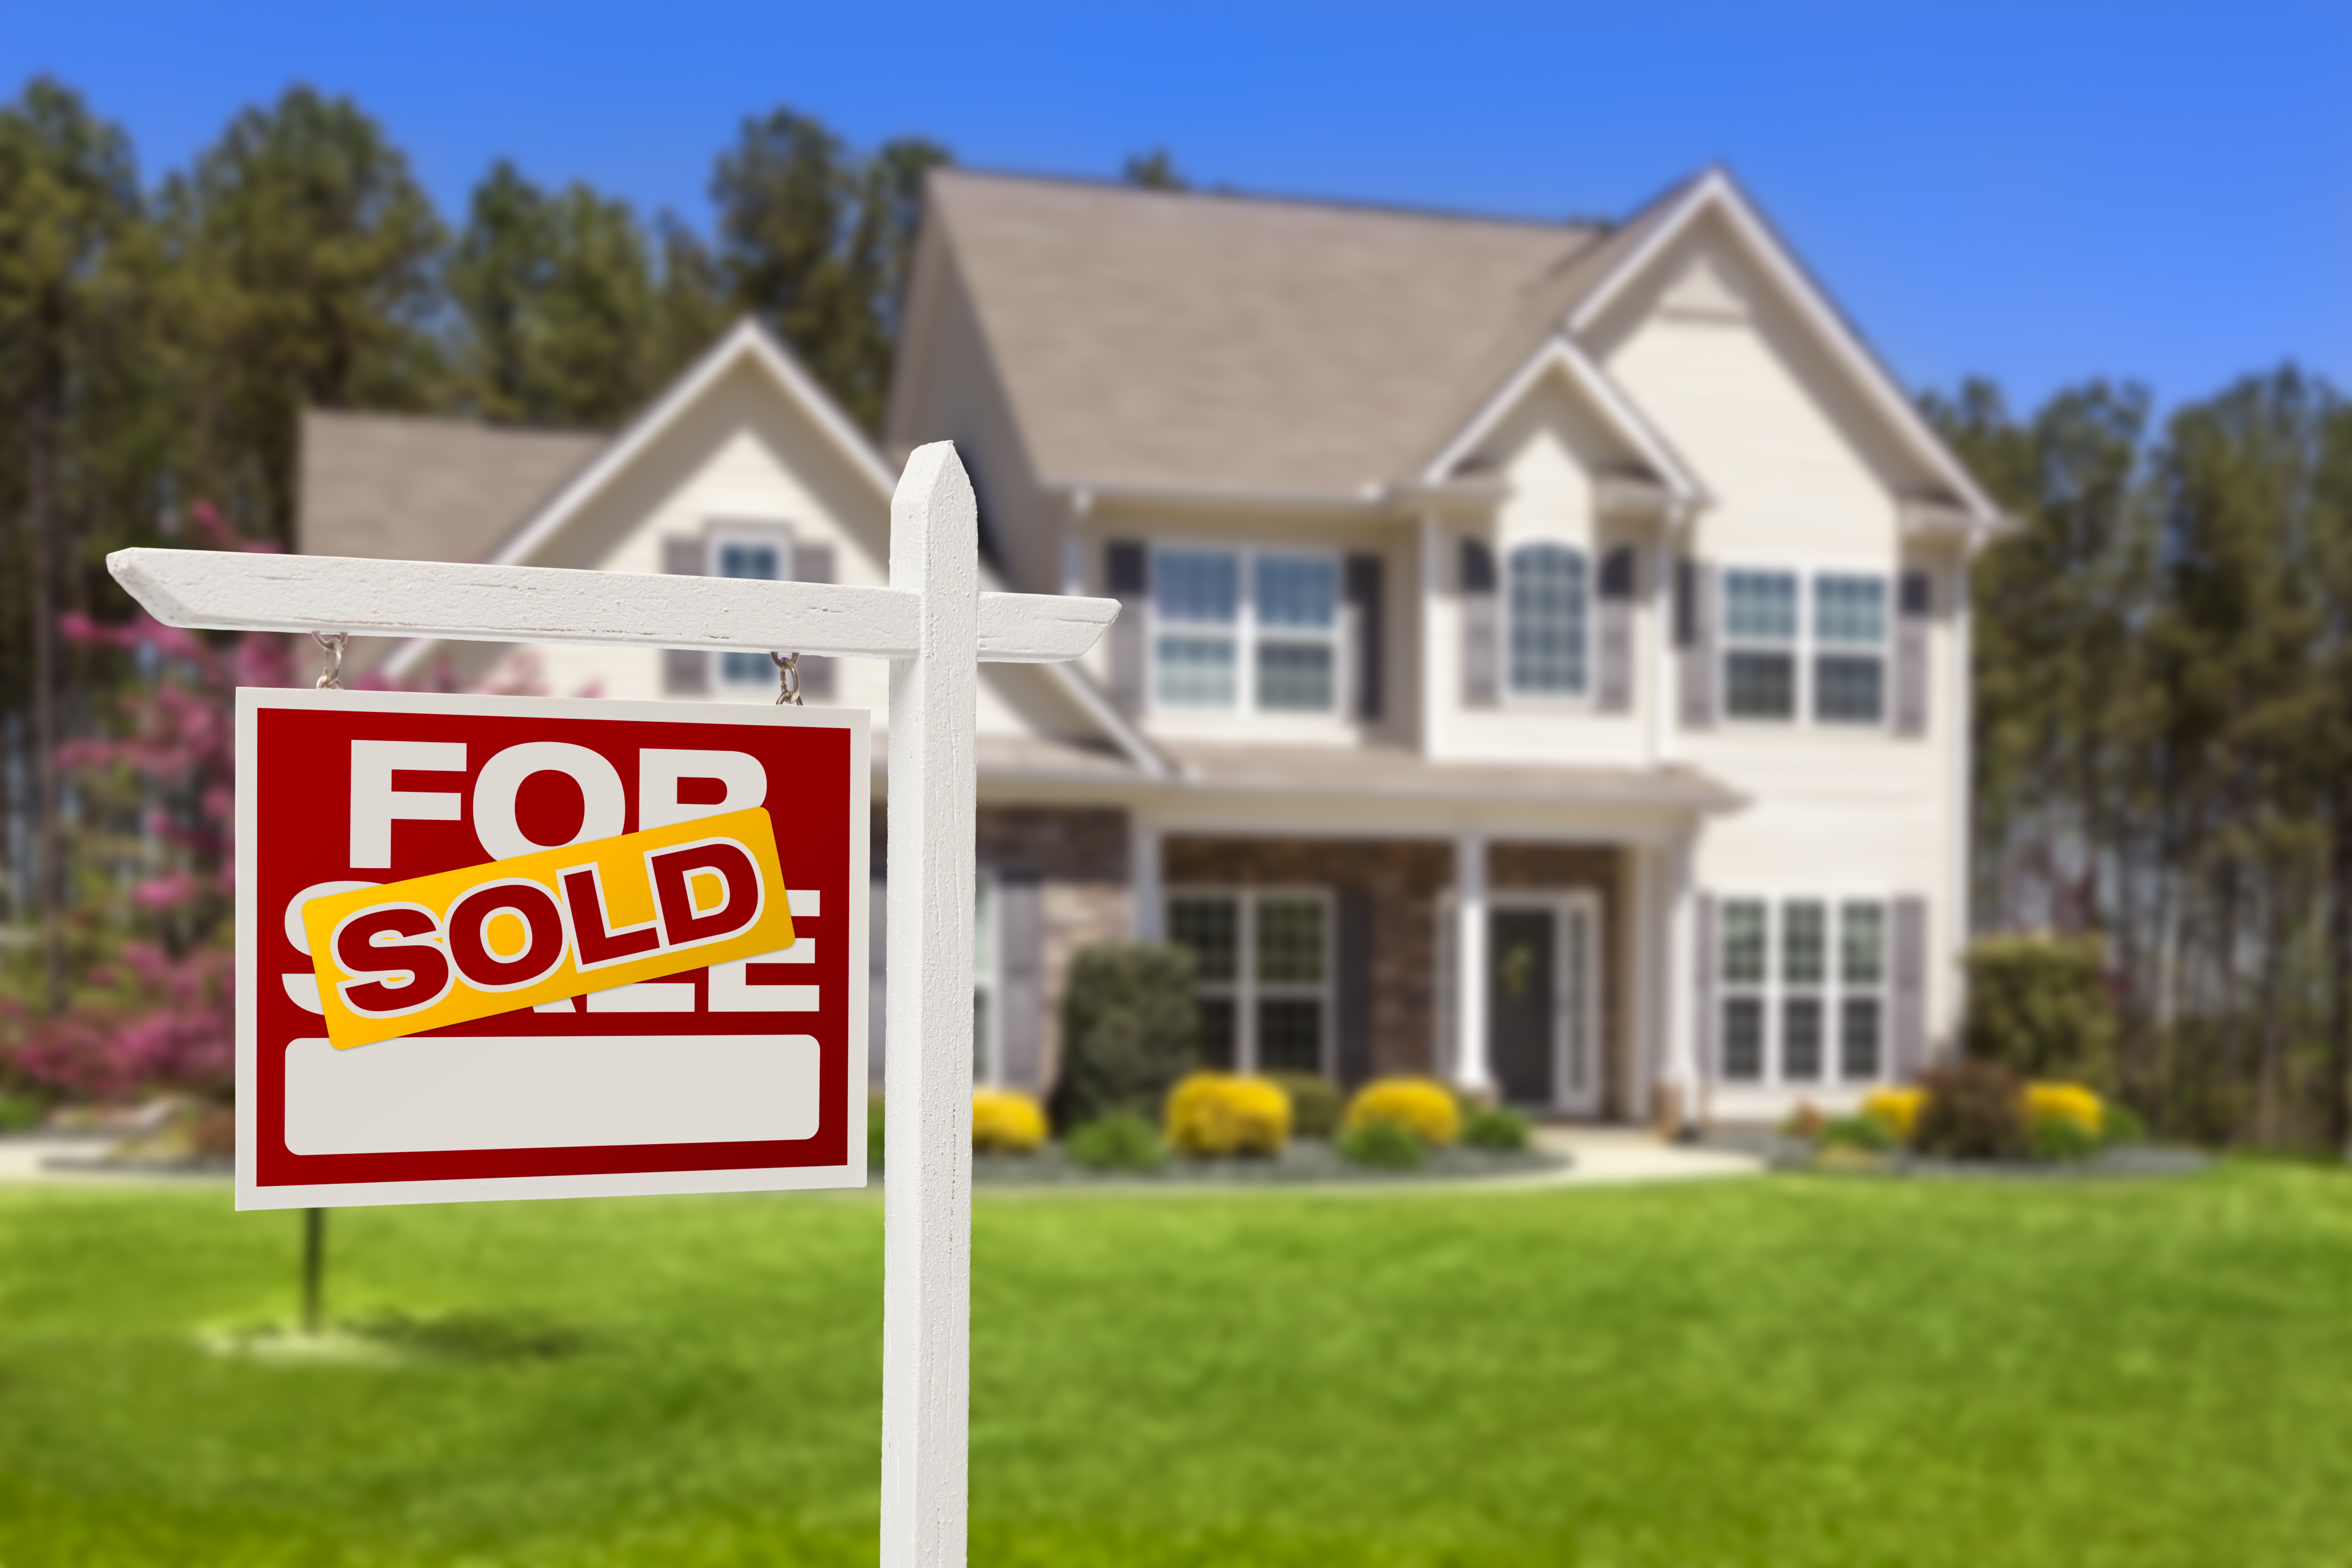 Homes For Sale in Clearfield, Utah